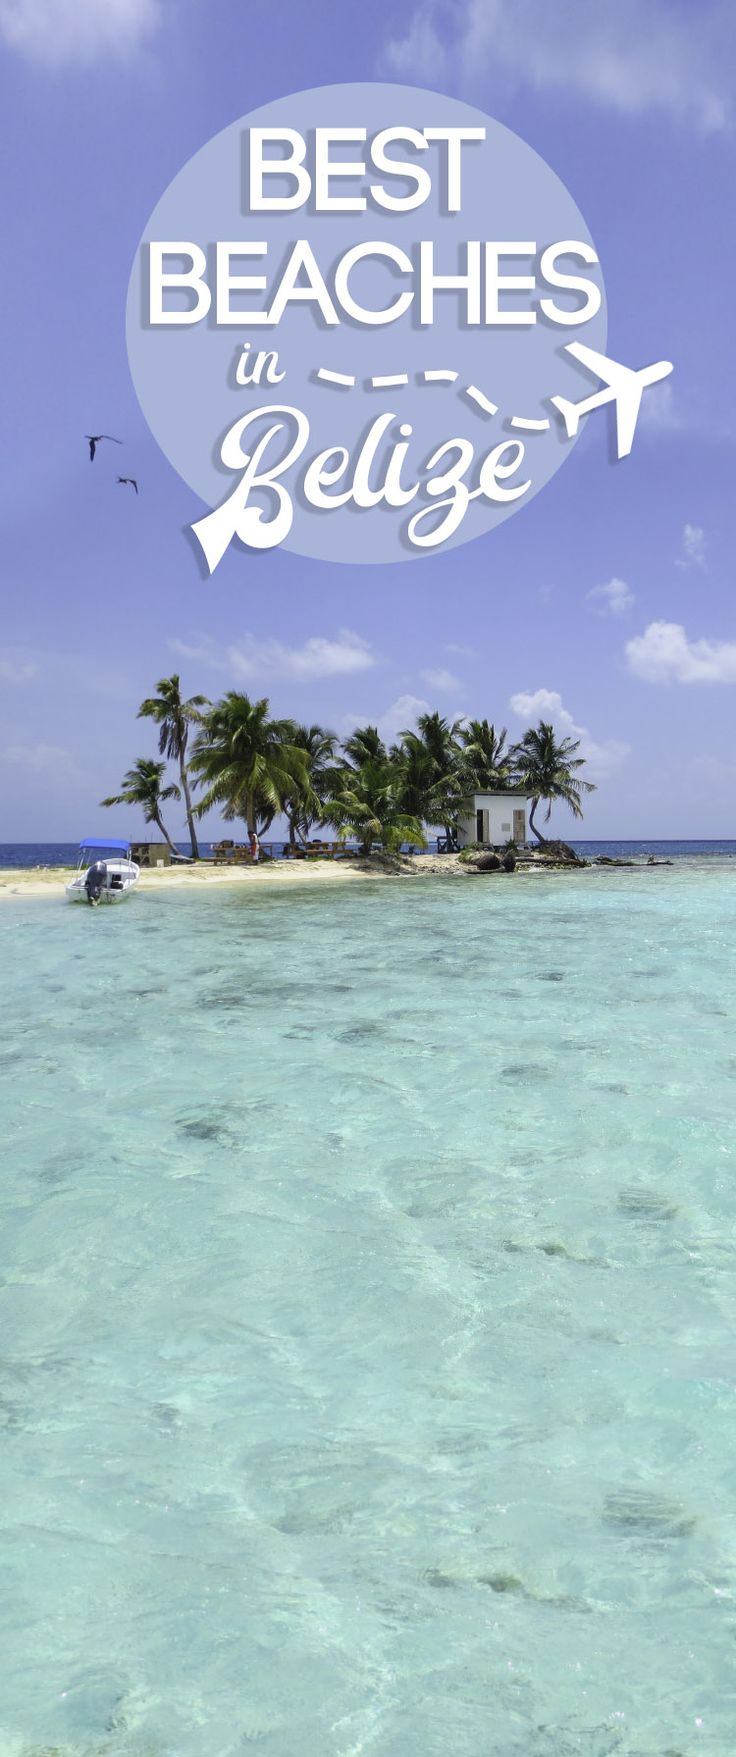 """The 5 best beaches in Belize to visit. Belize has 240 miles of coastline and 450+ islands which they call """"Cayes."""" Don't miss these 5 beaches in Belize!"""